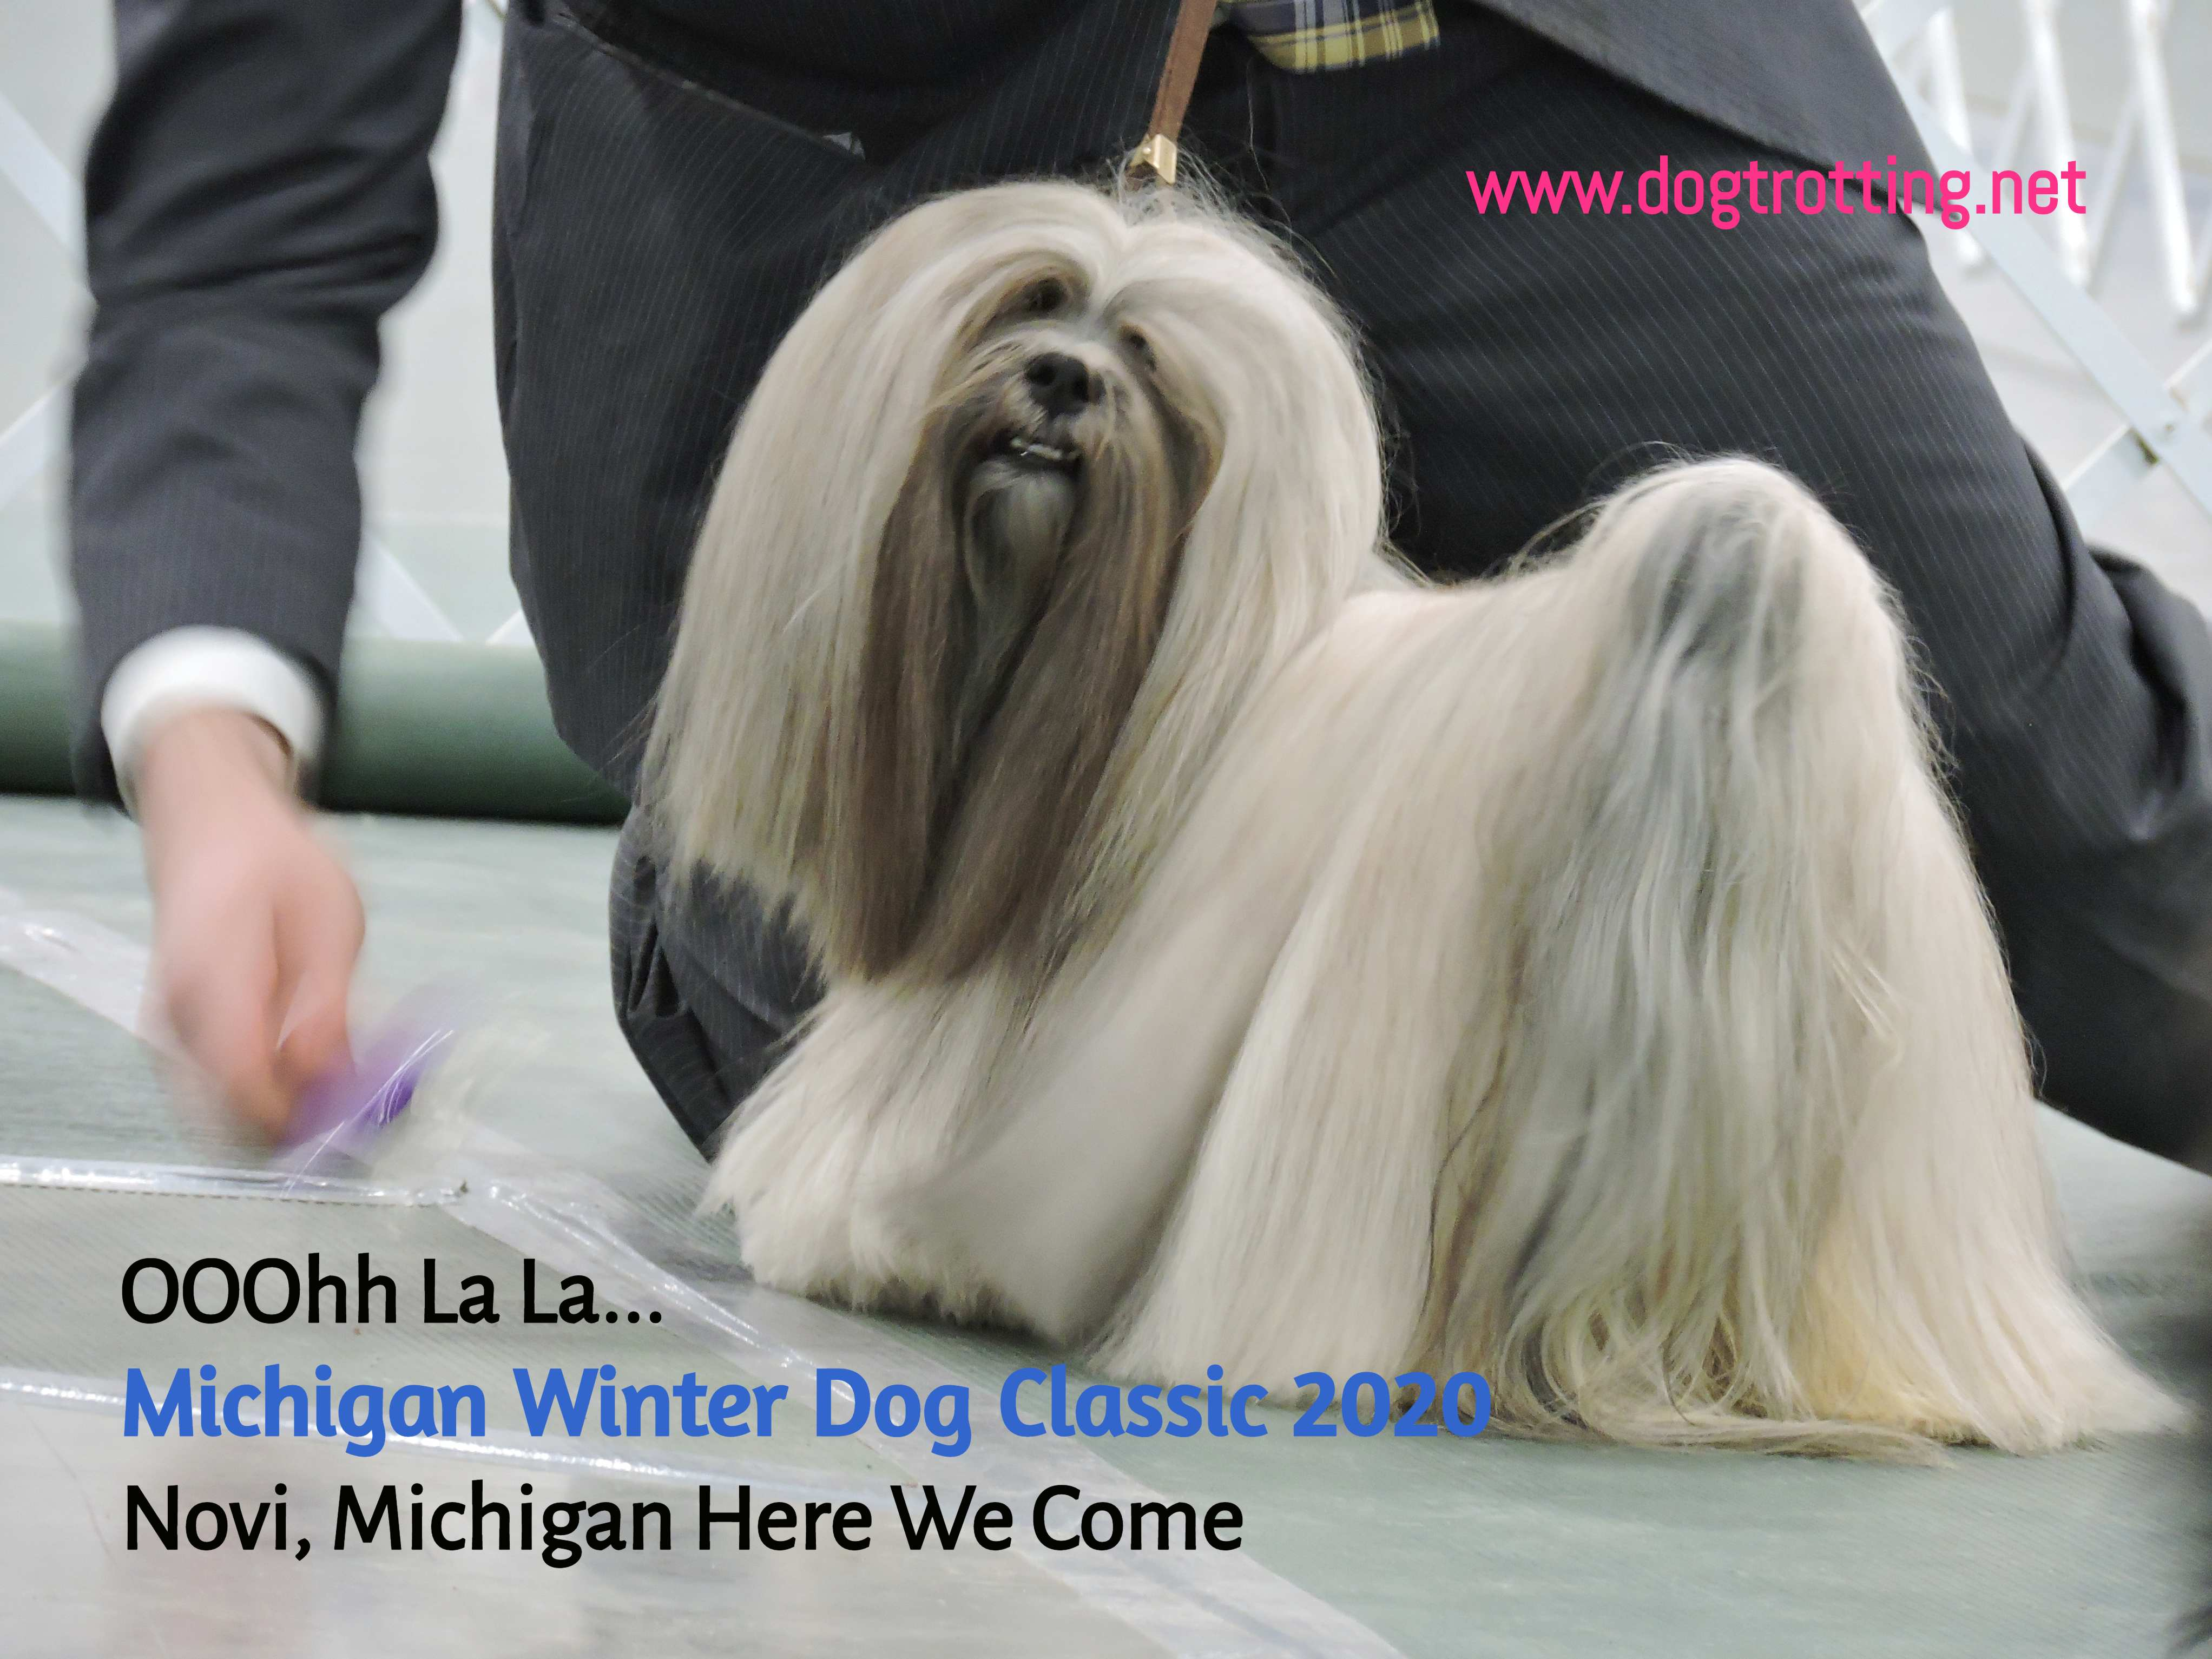 Travel Novi, MI: My Mutt goes to The Michigan Winter Dog Classic 2020